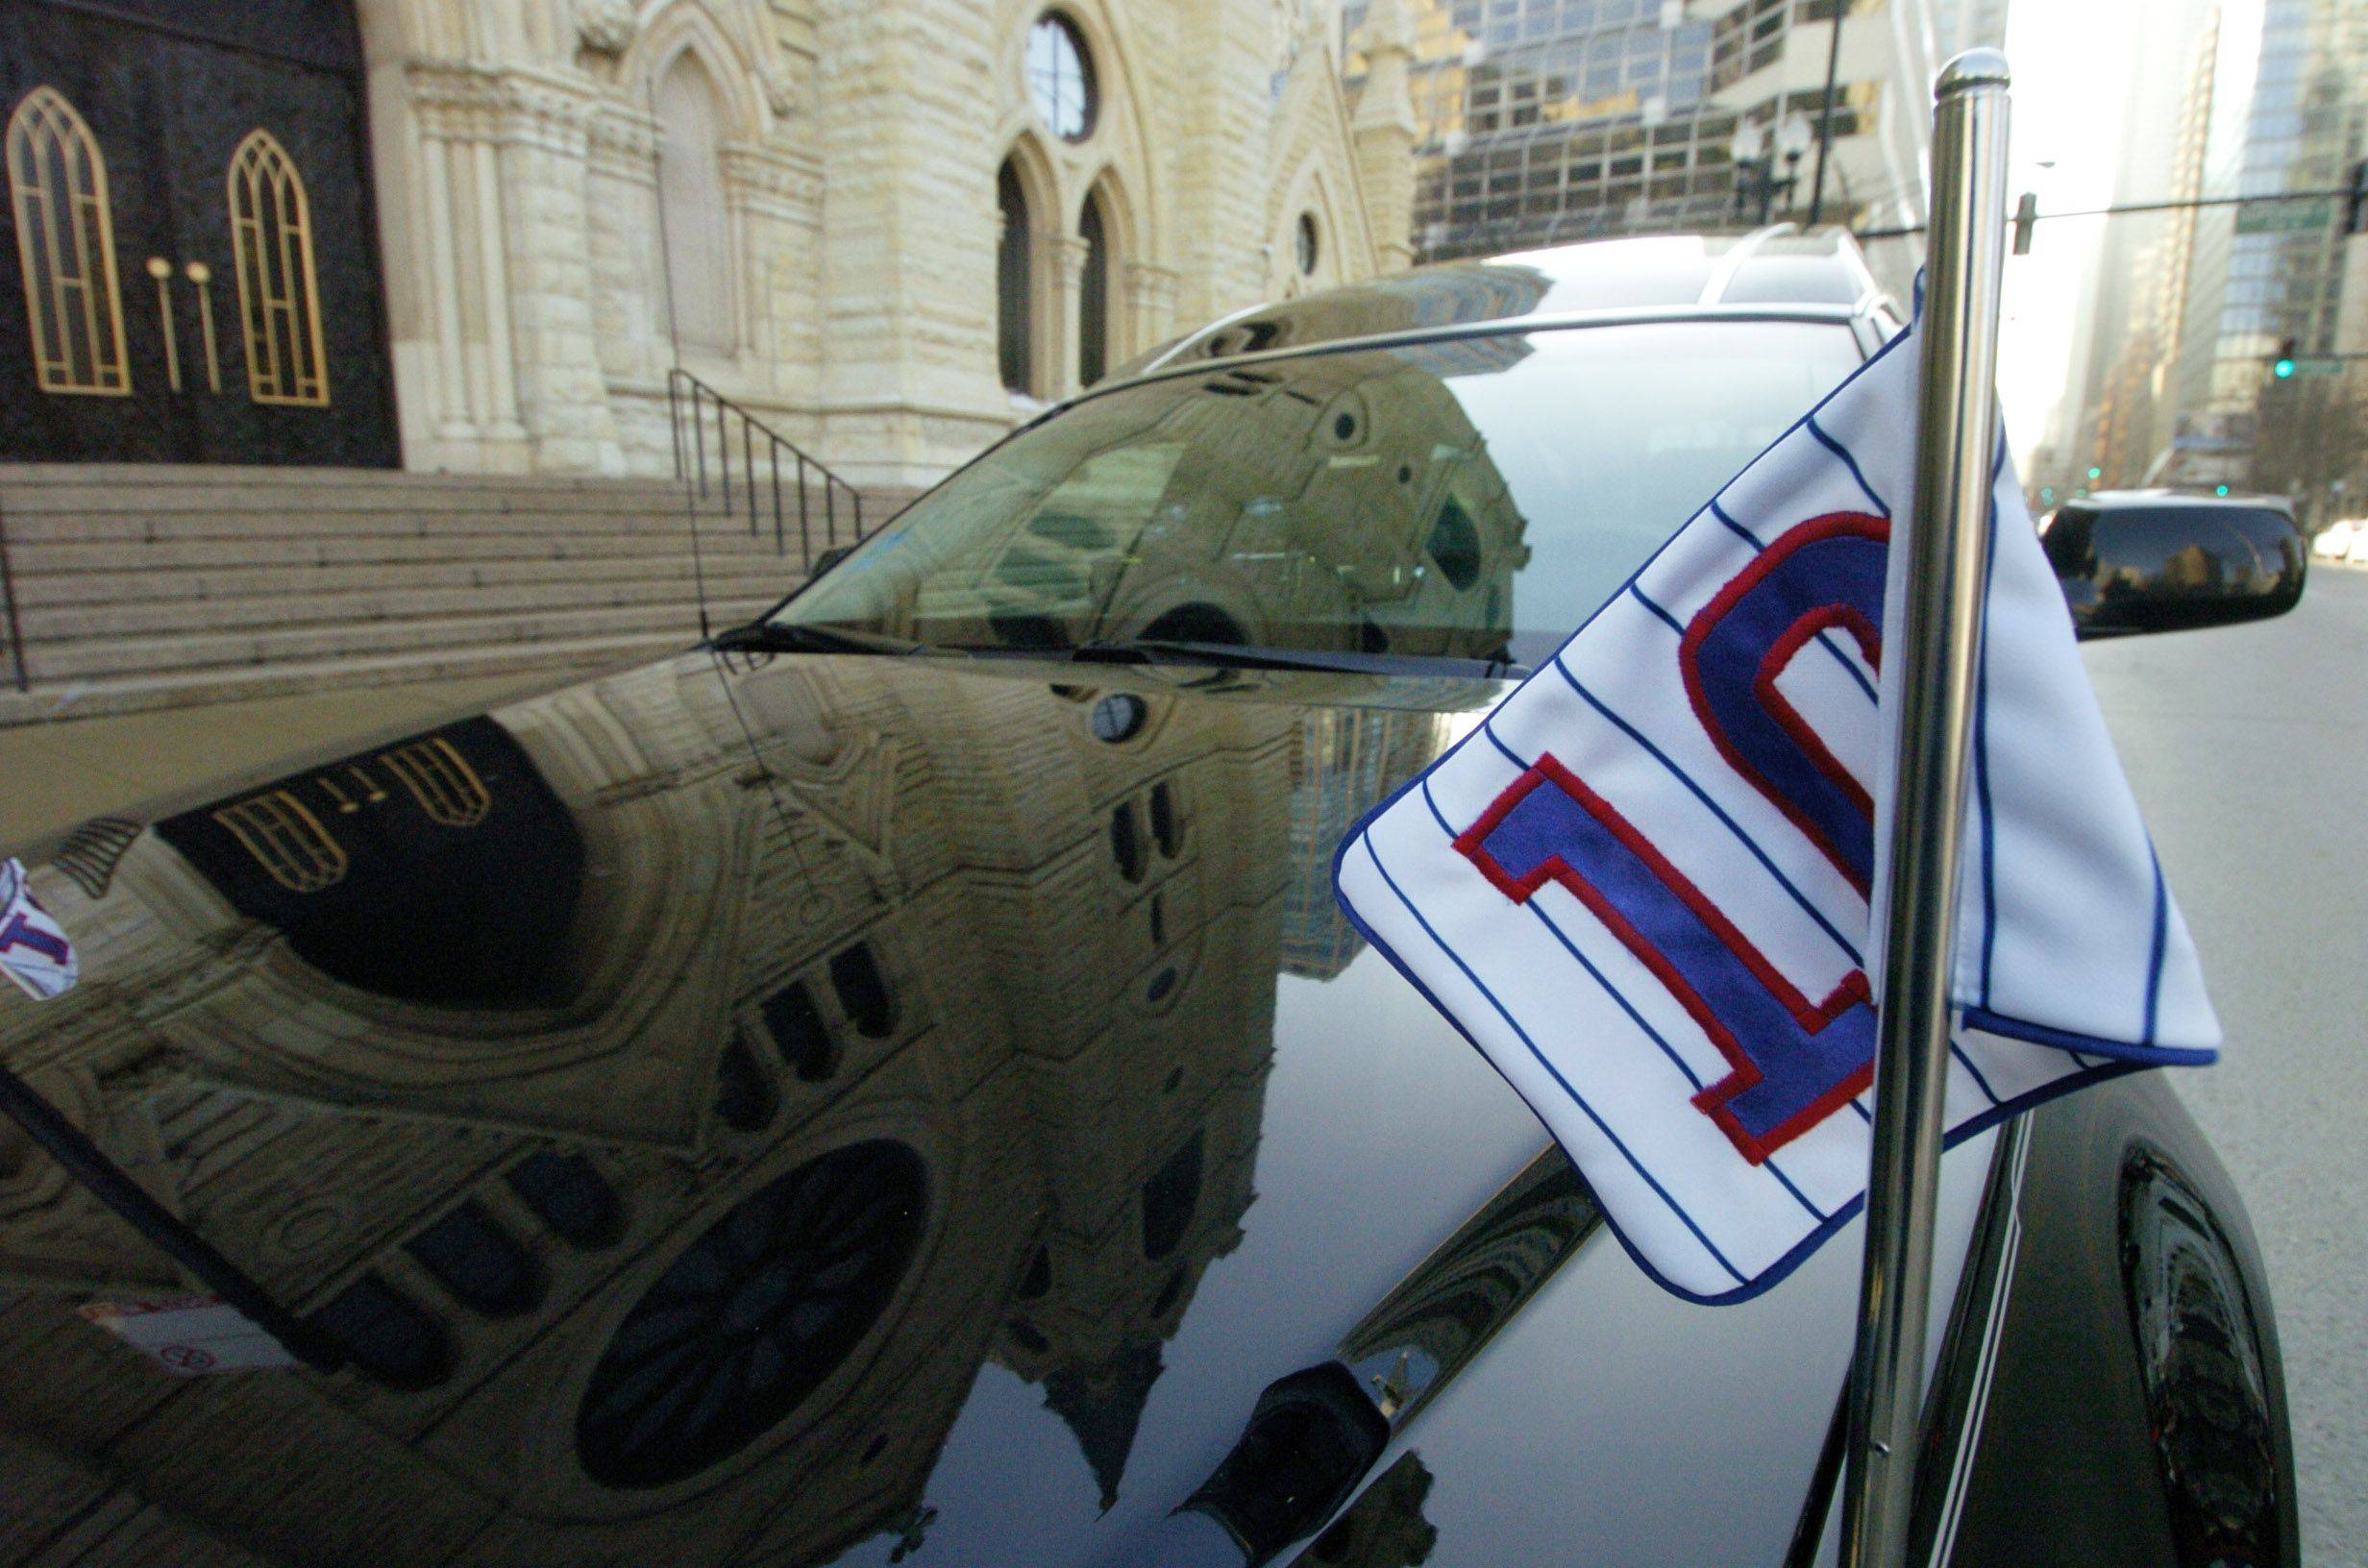 Number 10 flags adorn the hearse during Ron Santo's funeral.